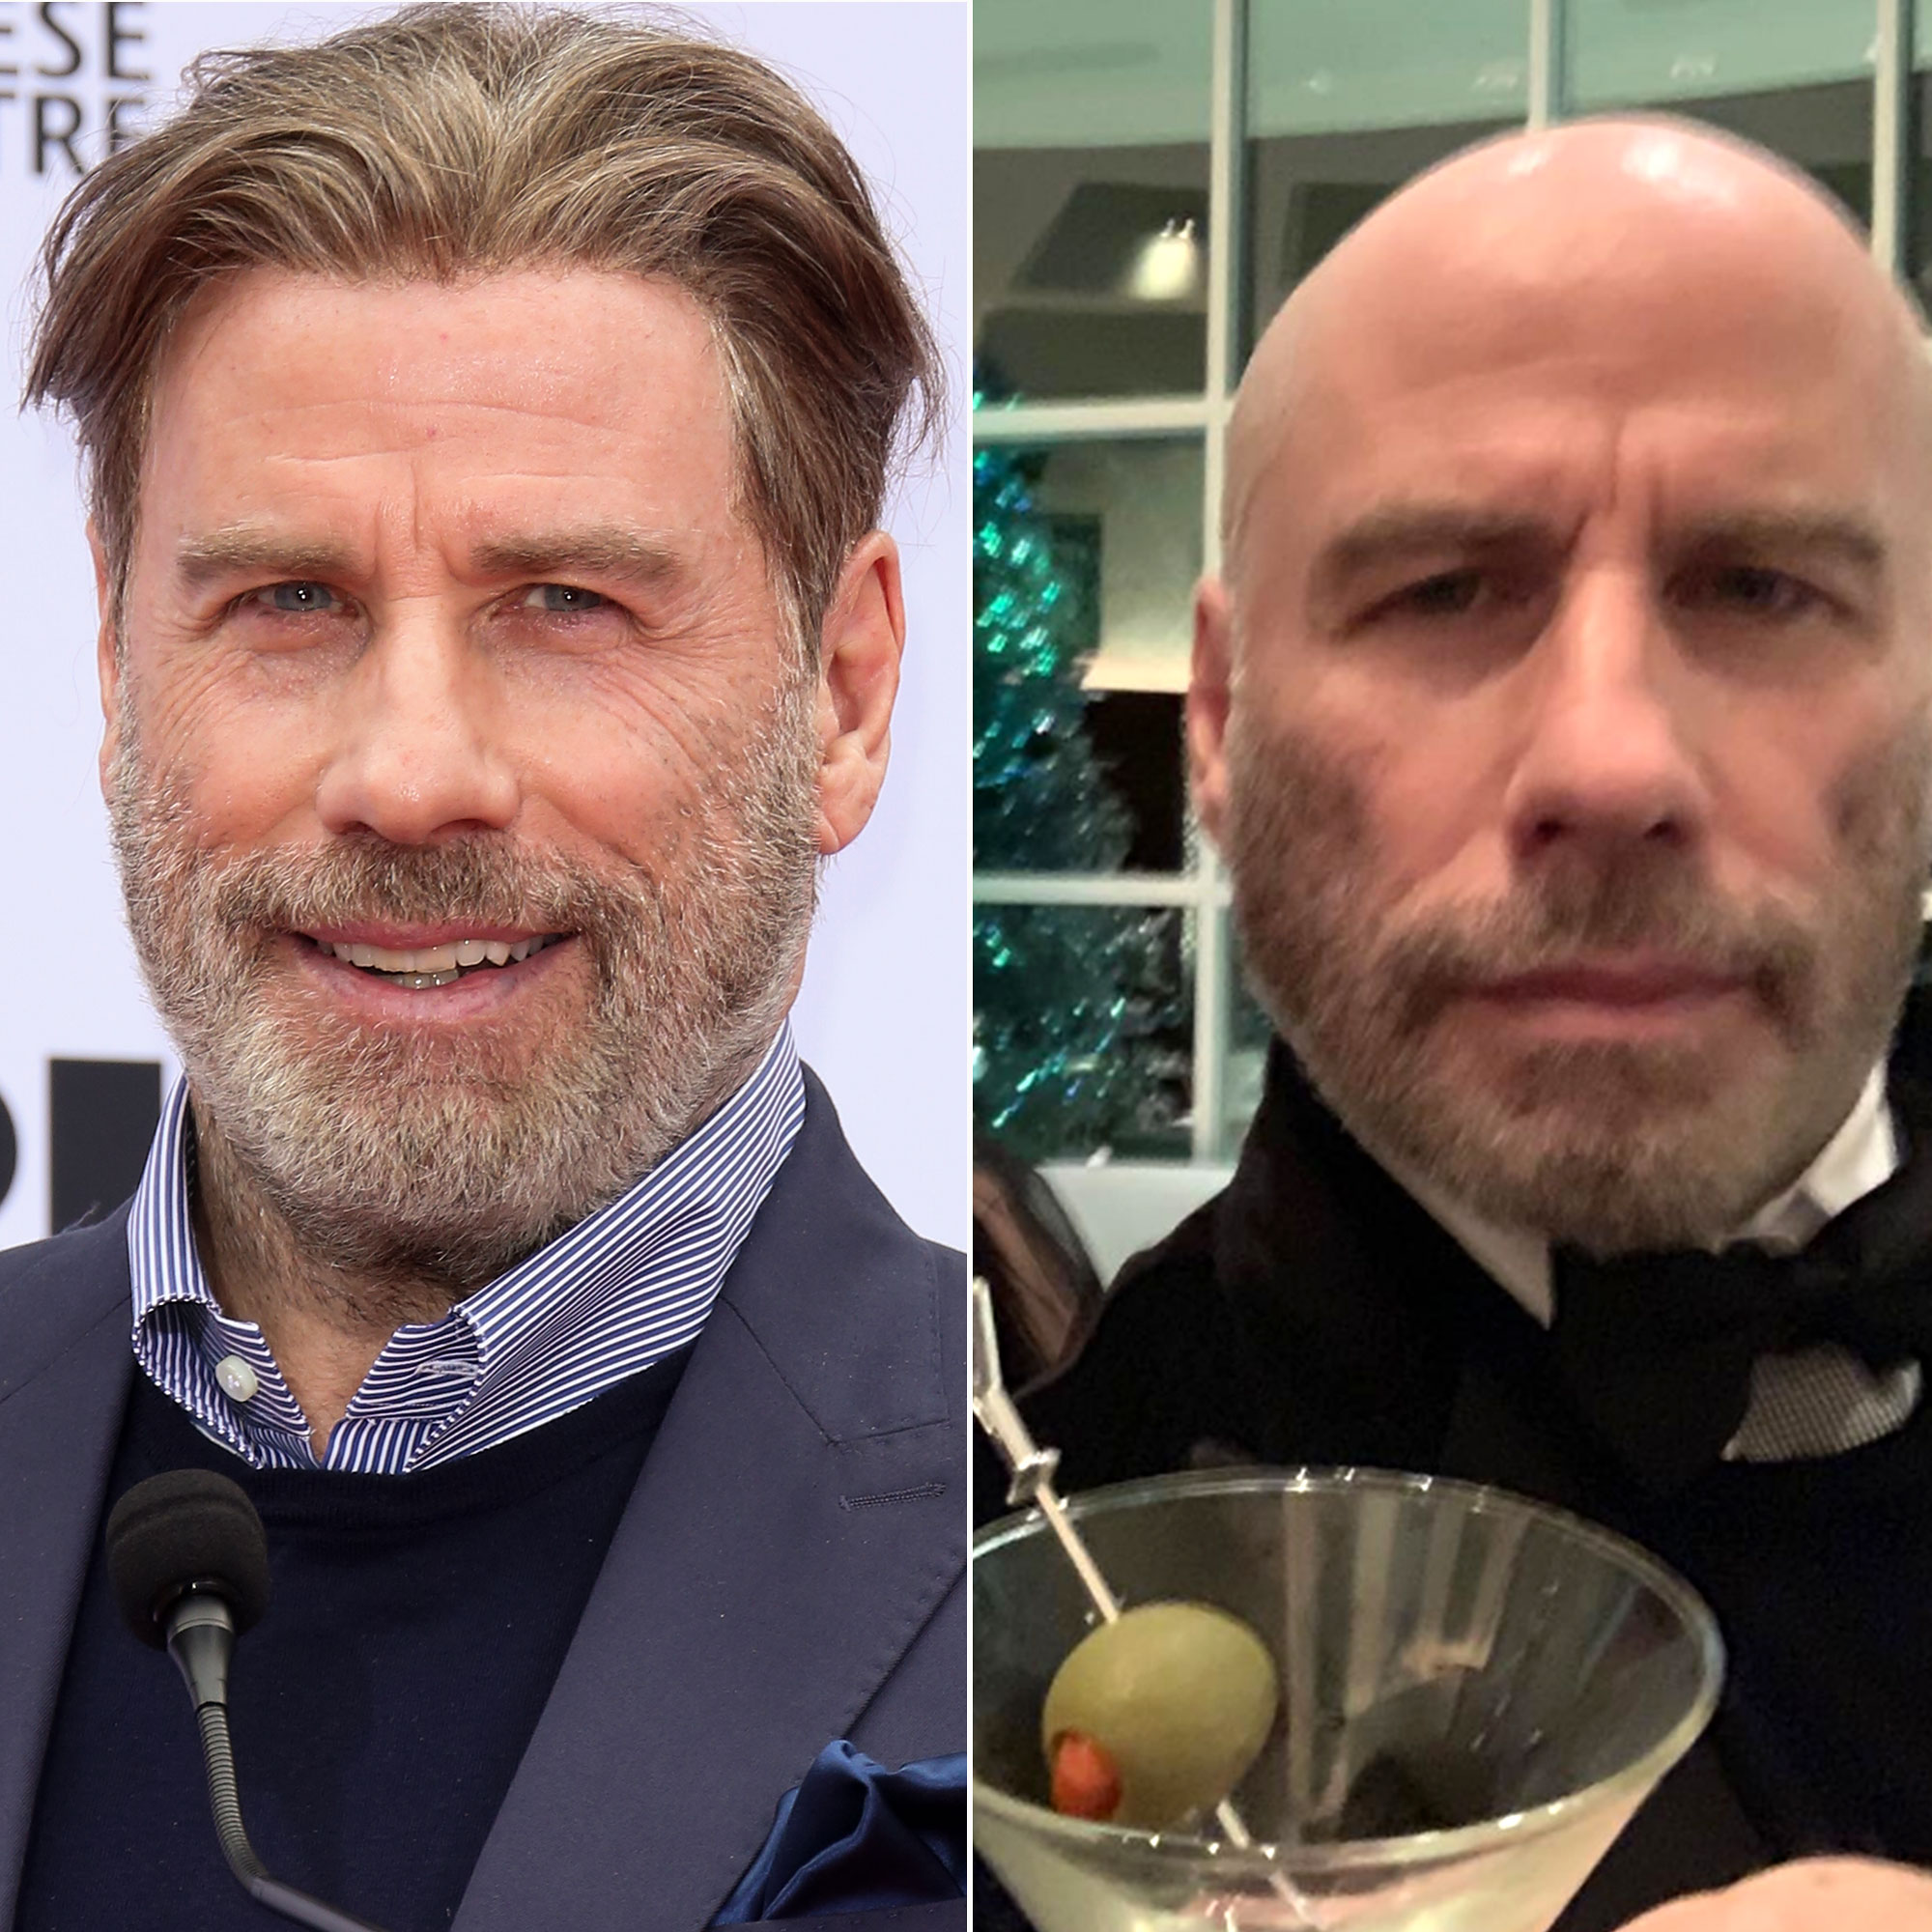 Celebrity Hair Transformations of 2019 - Talk about a transformation! The Grease star casually showed off his new bald style with an Instagram post on Sunday, January 6.